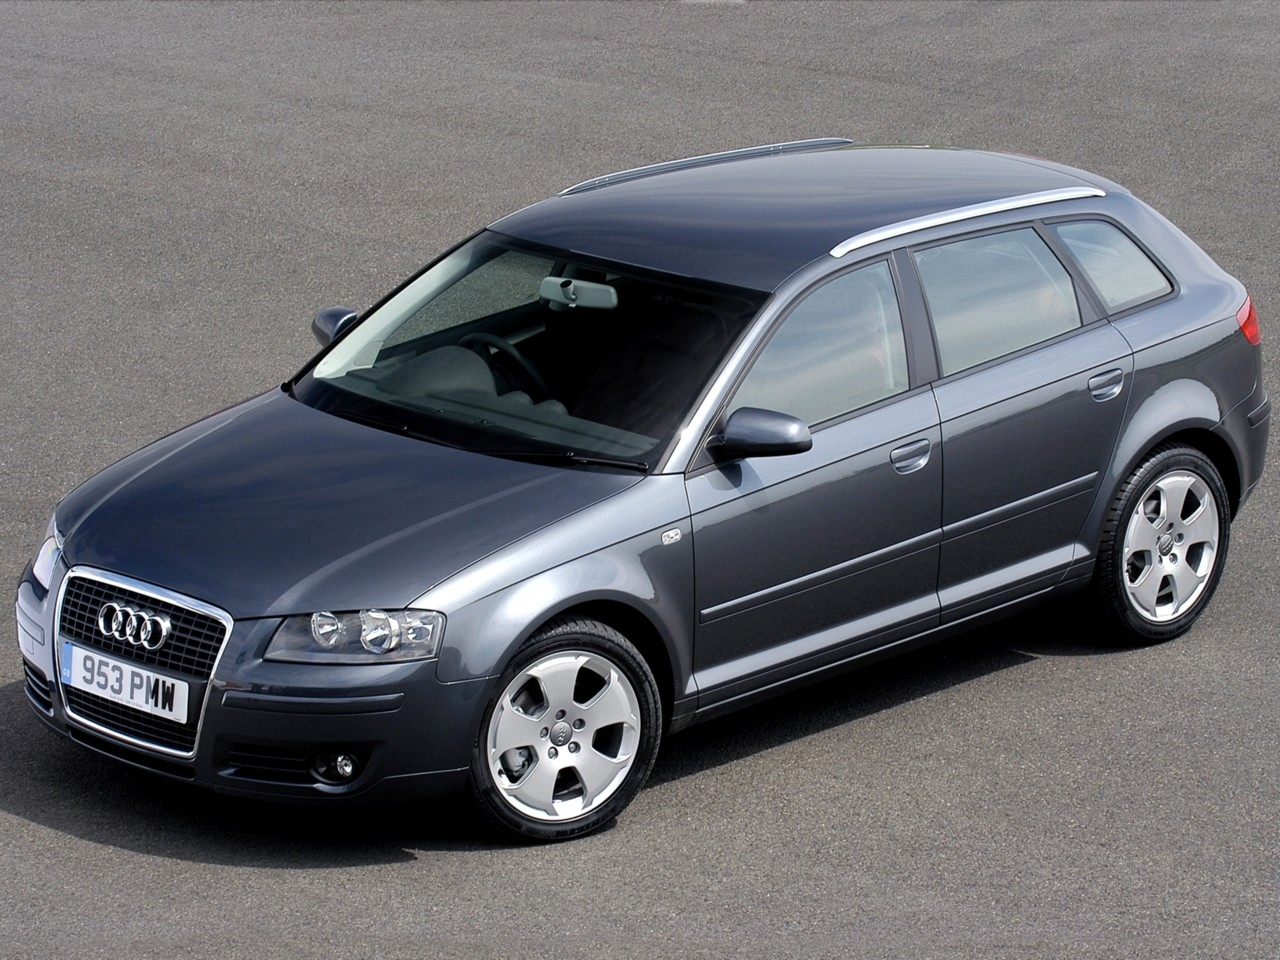 Audi a3 sportback specs photos 2004 2005 2006 2007 for Dimensioni audi a3 sportback 2008